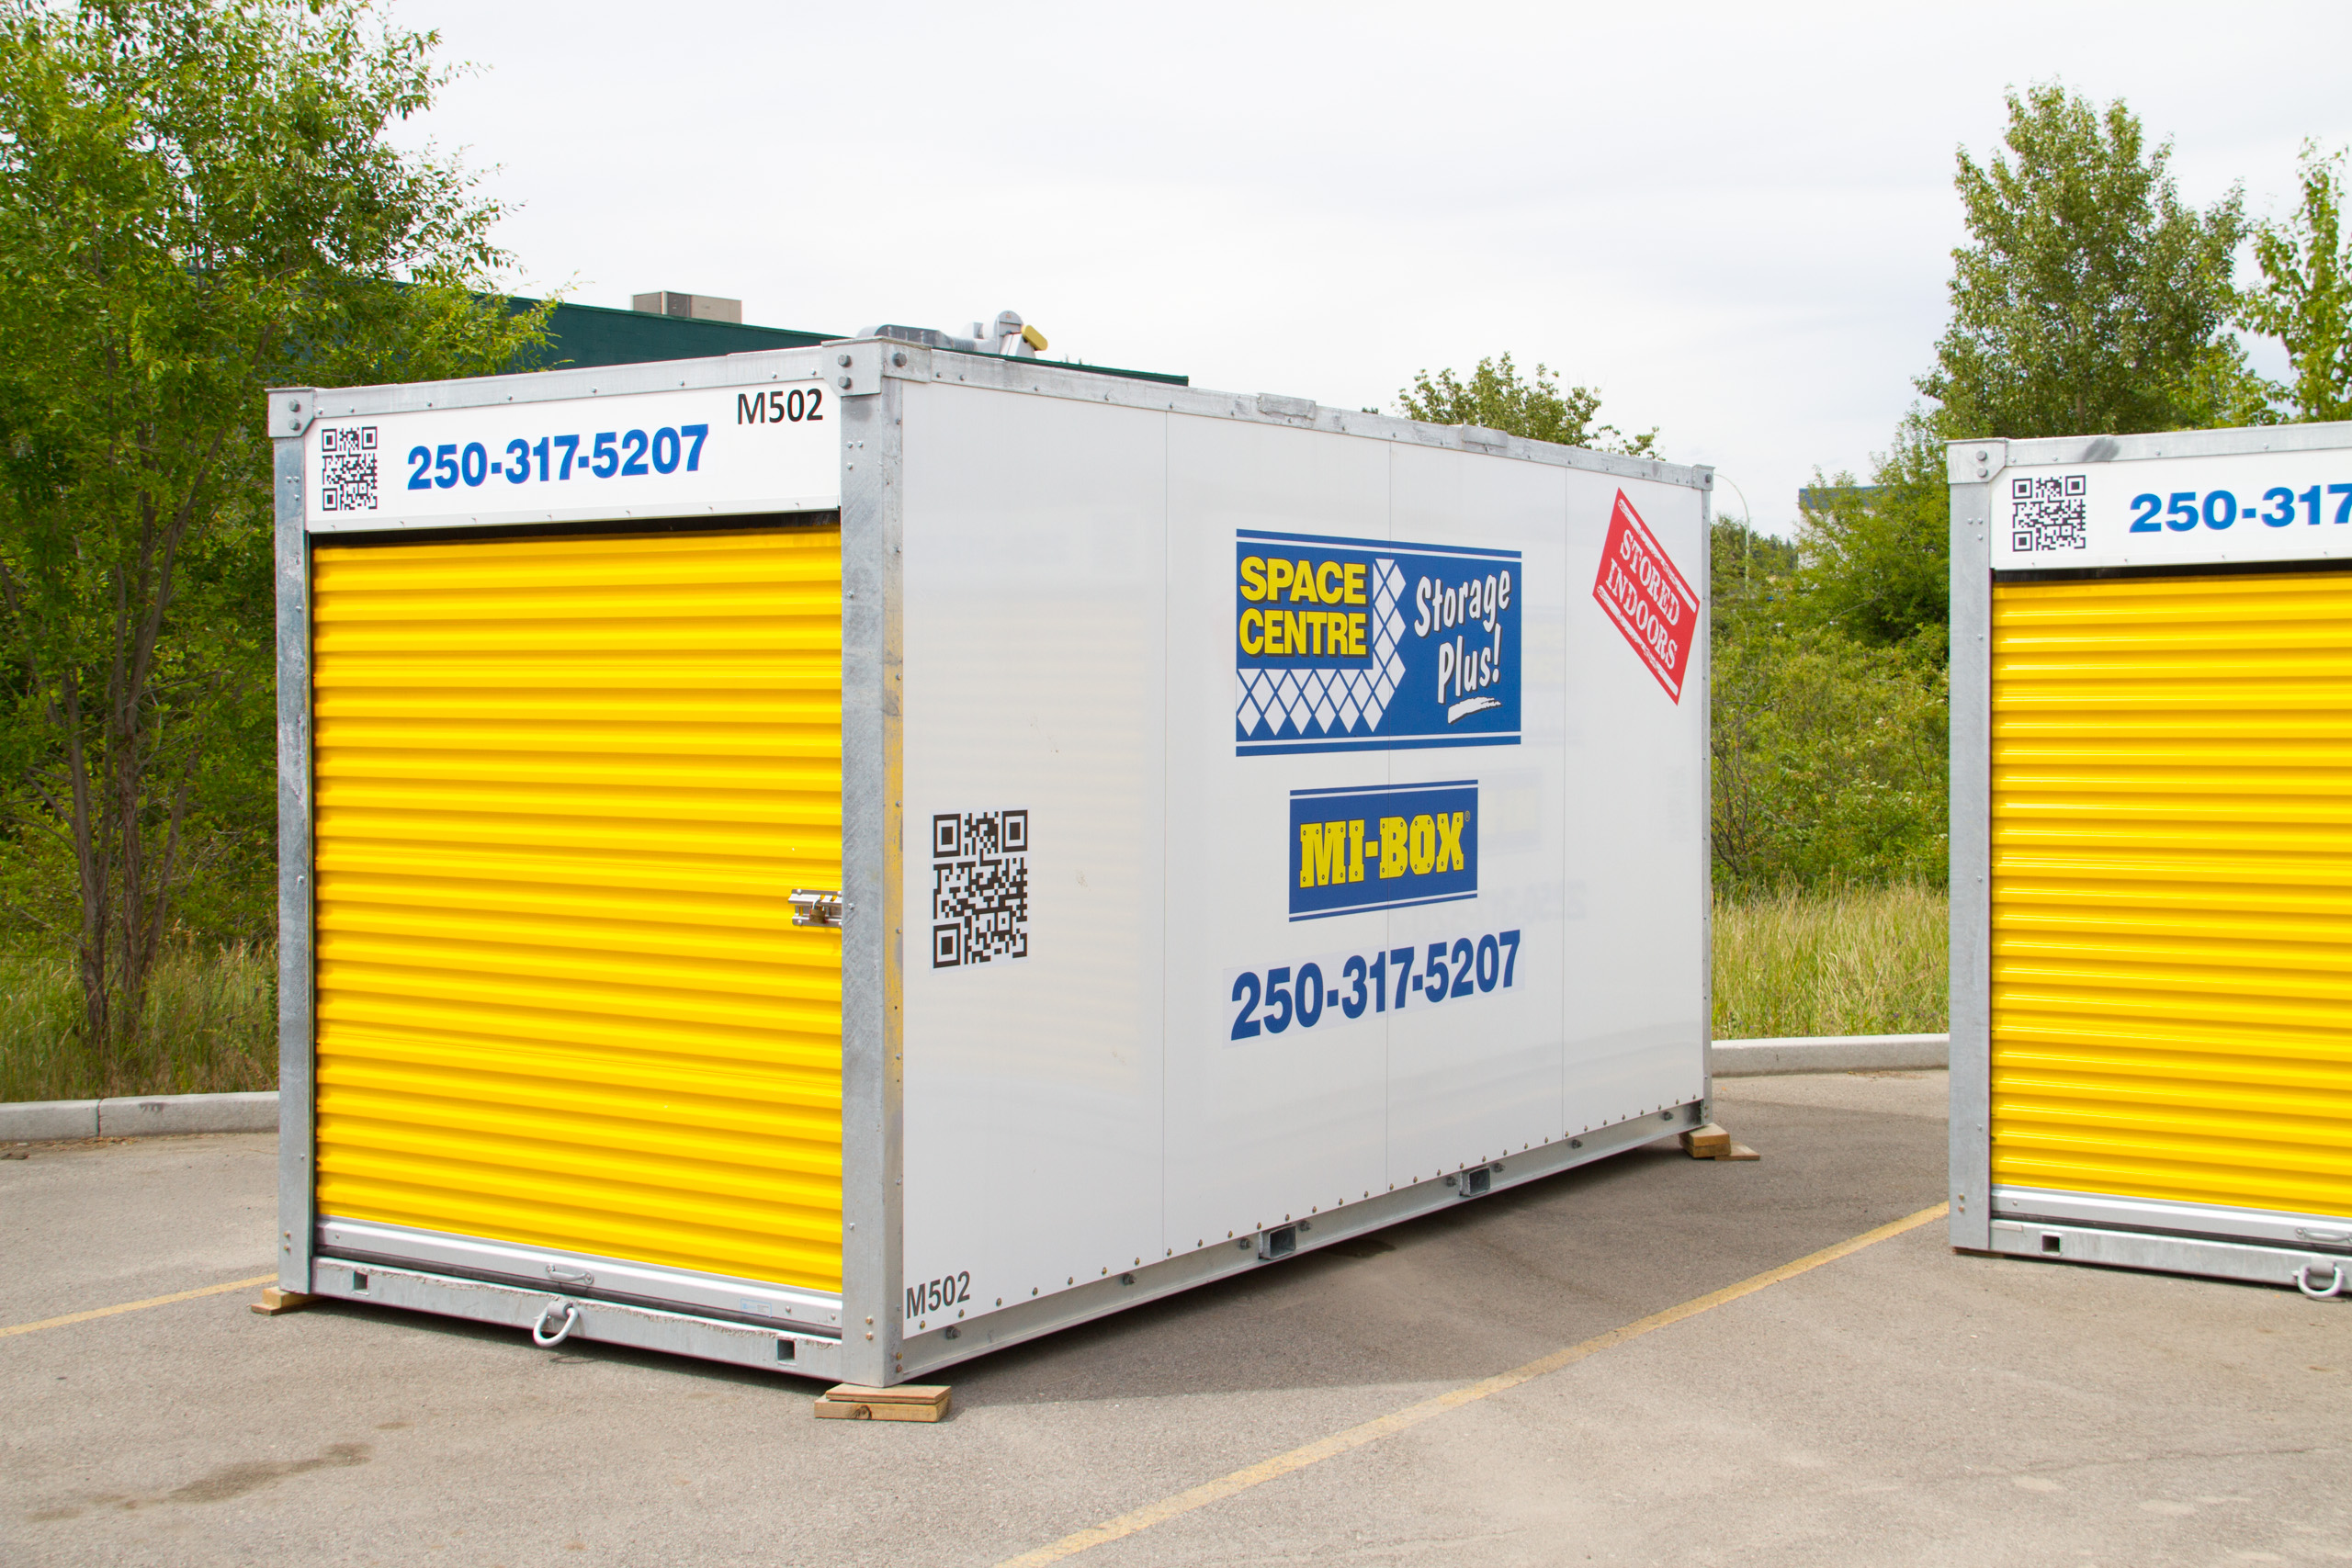 Portable Steel Storage Units : Portable storage containers why mi box is better than a